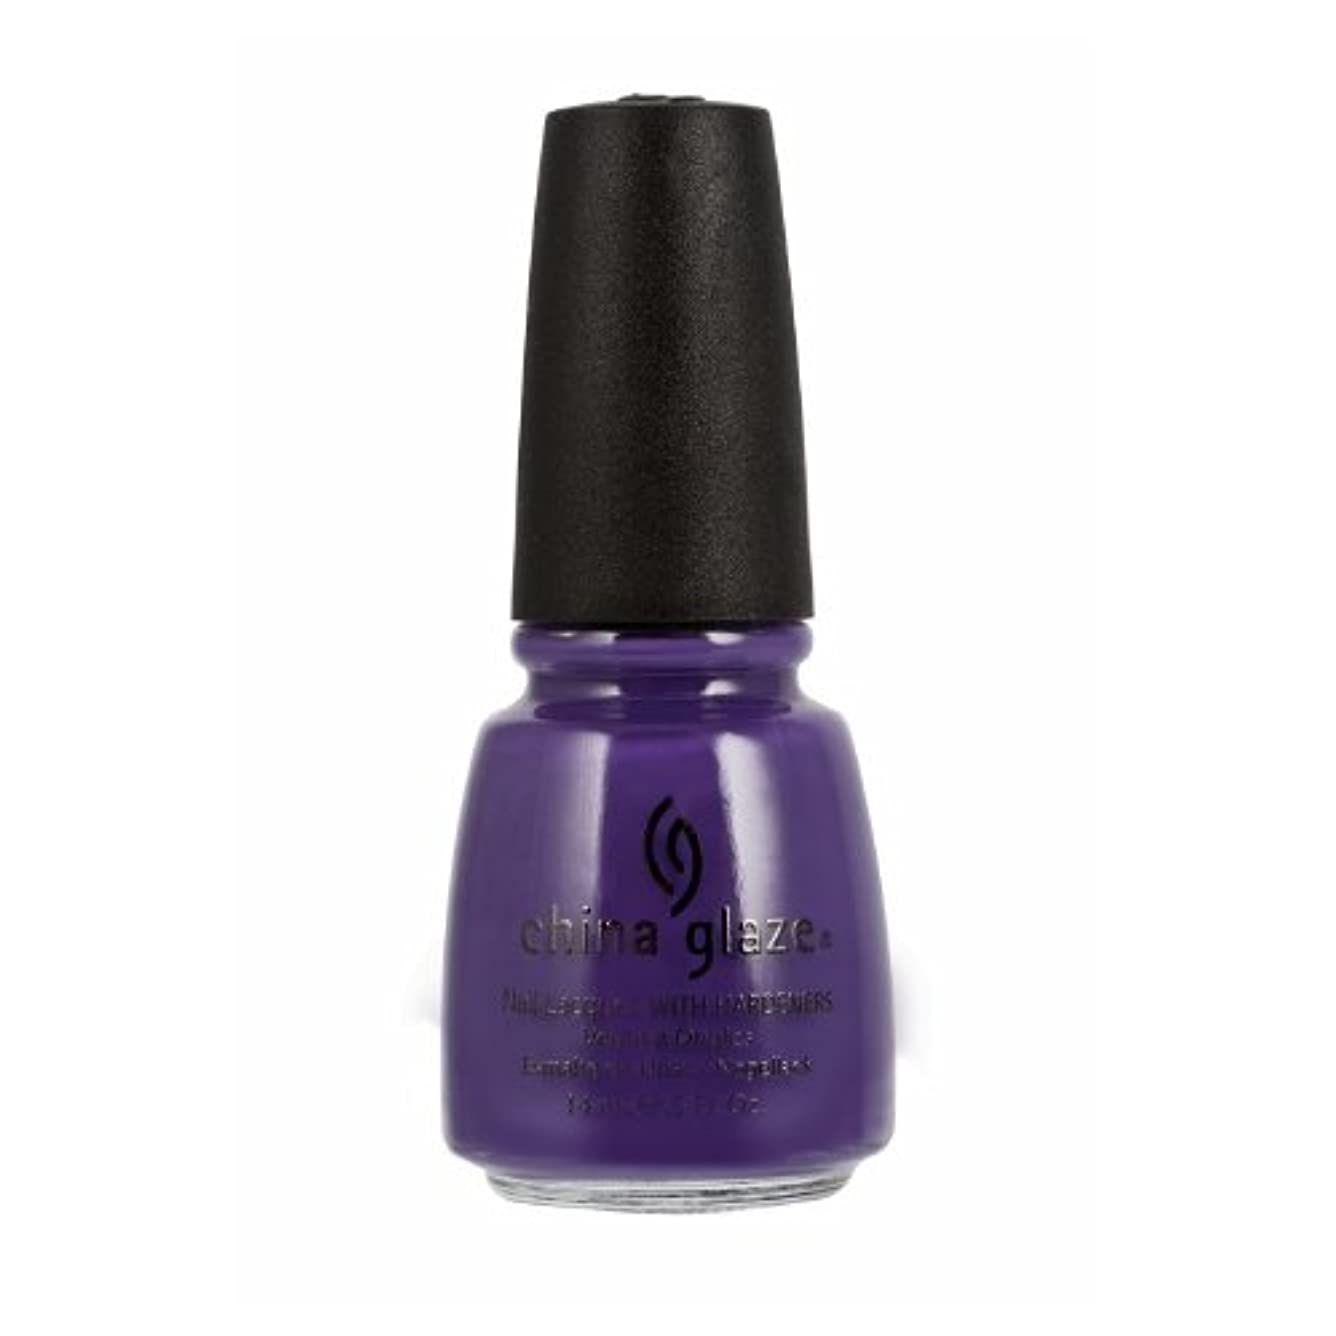 原始的な大気こするCHINA GLAZE Nail Lacquer with Nail Hardner 2 - Grape Pop (並行輸入品)